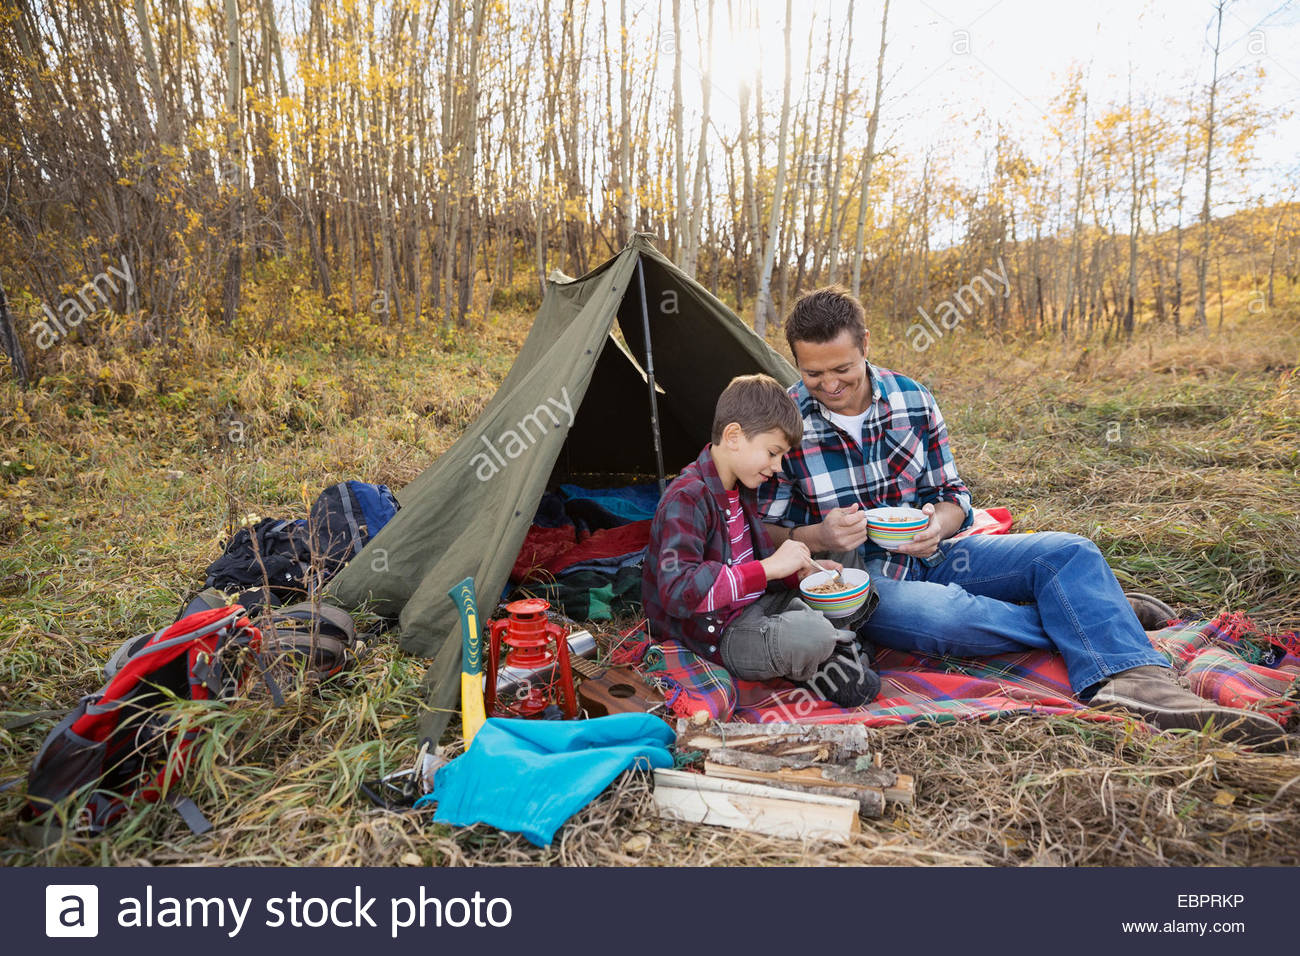 Father and son eating outside tent at campsite - Stock Image